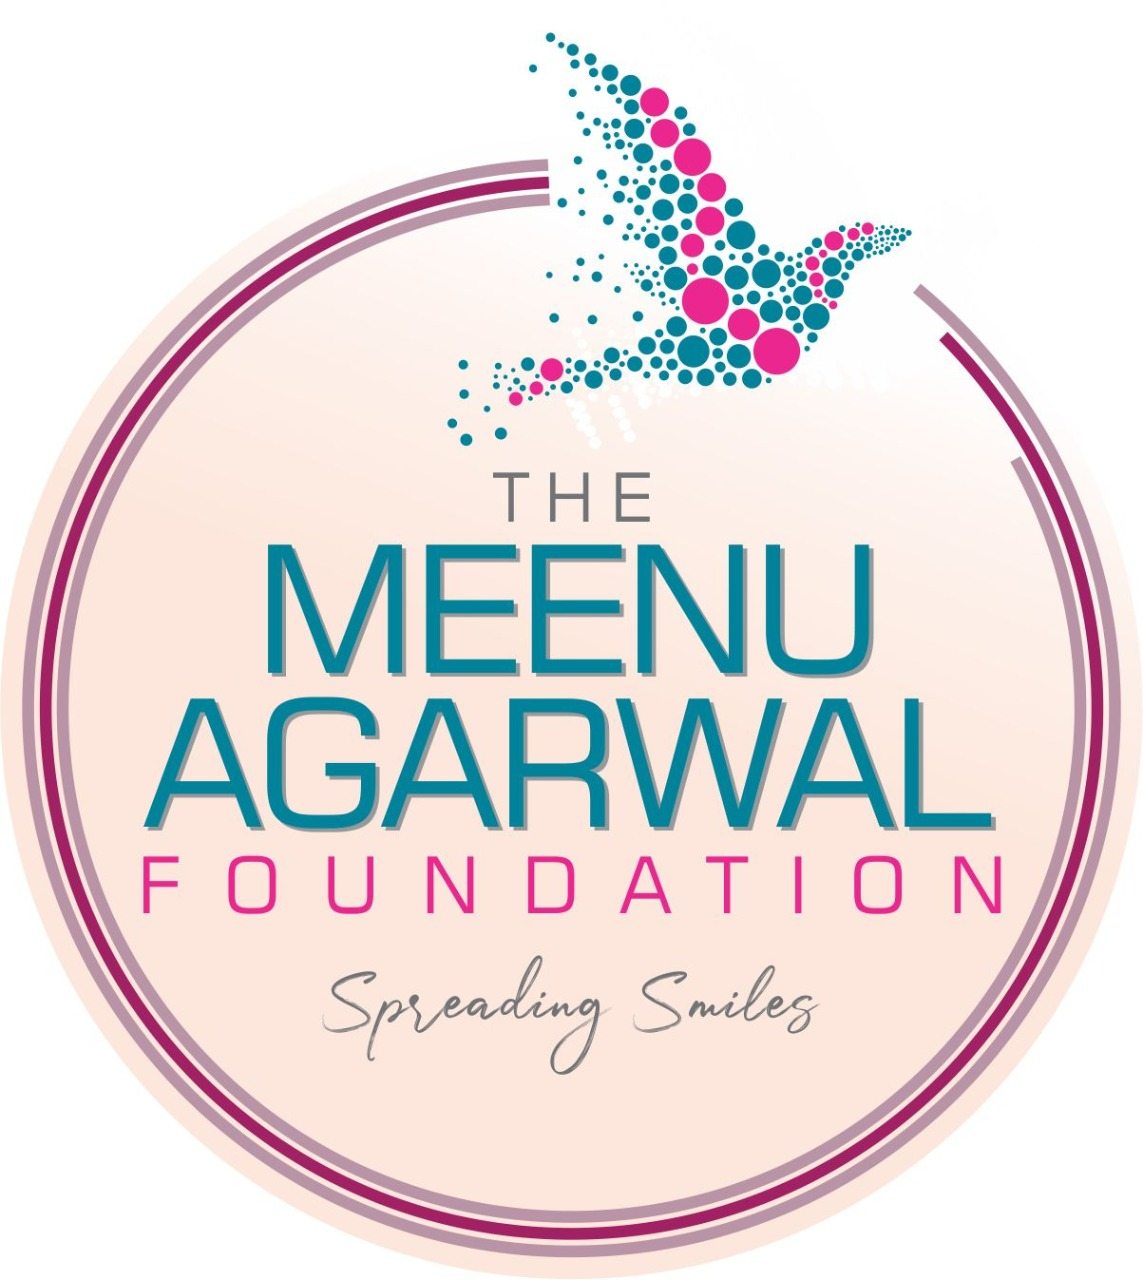 The Meenu Agarwal Foundation